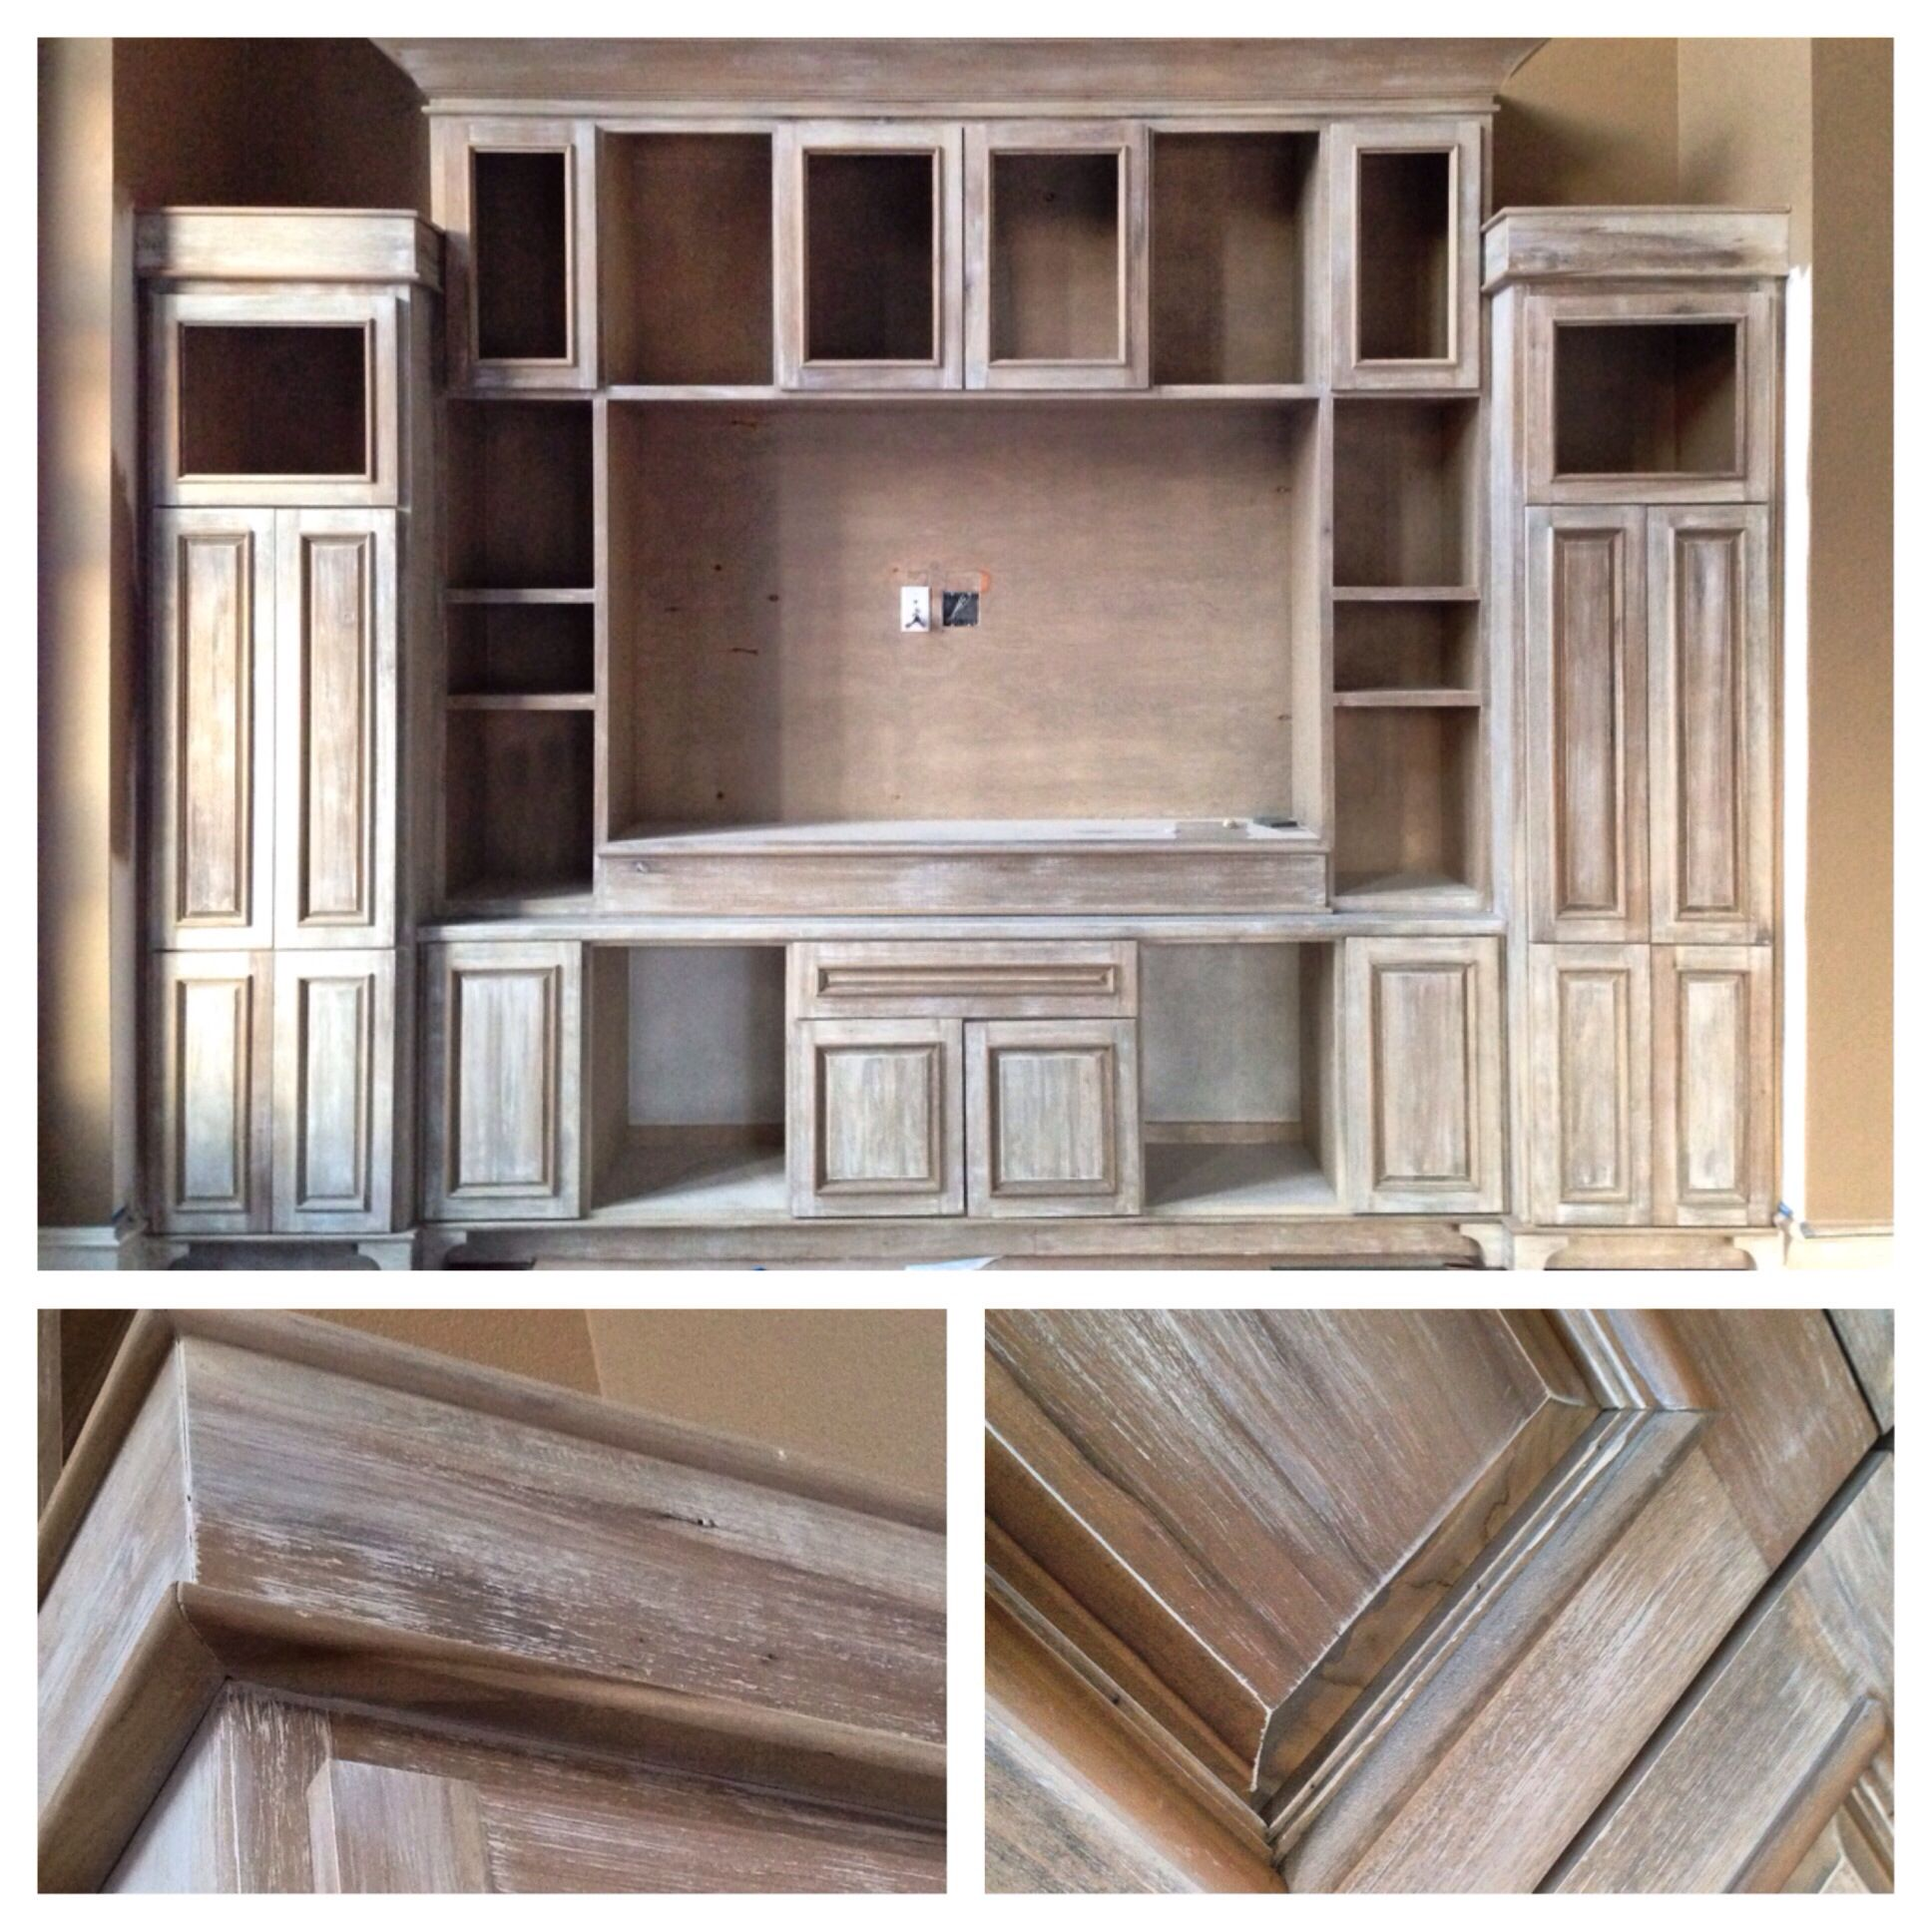 Diy Restoration Hardware Look Using Minwax Weathered Oak Stain On A Pine Built In And Glazing It With She Staining Wood Weathered Oak Stain Staining Cabinets